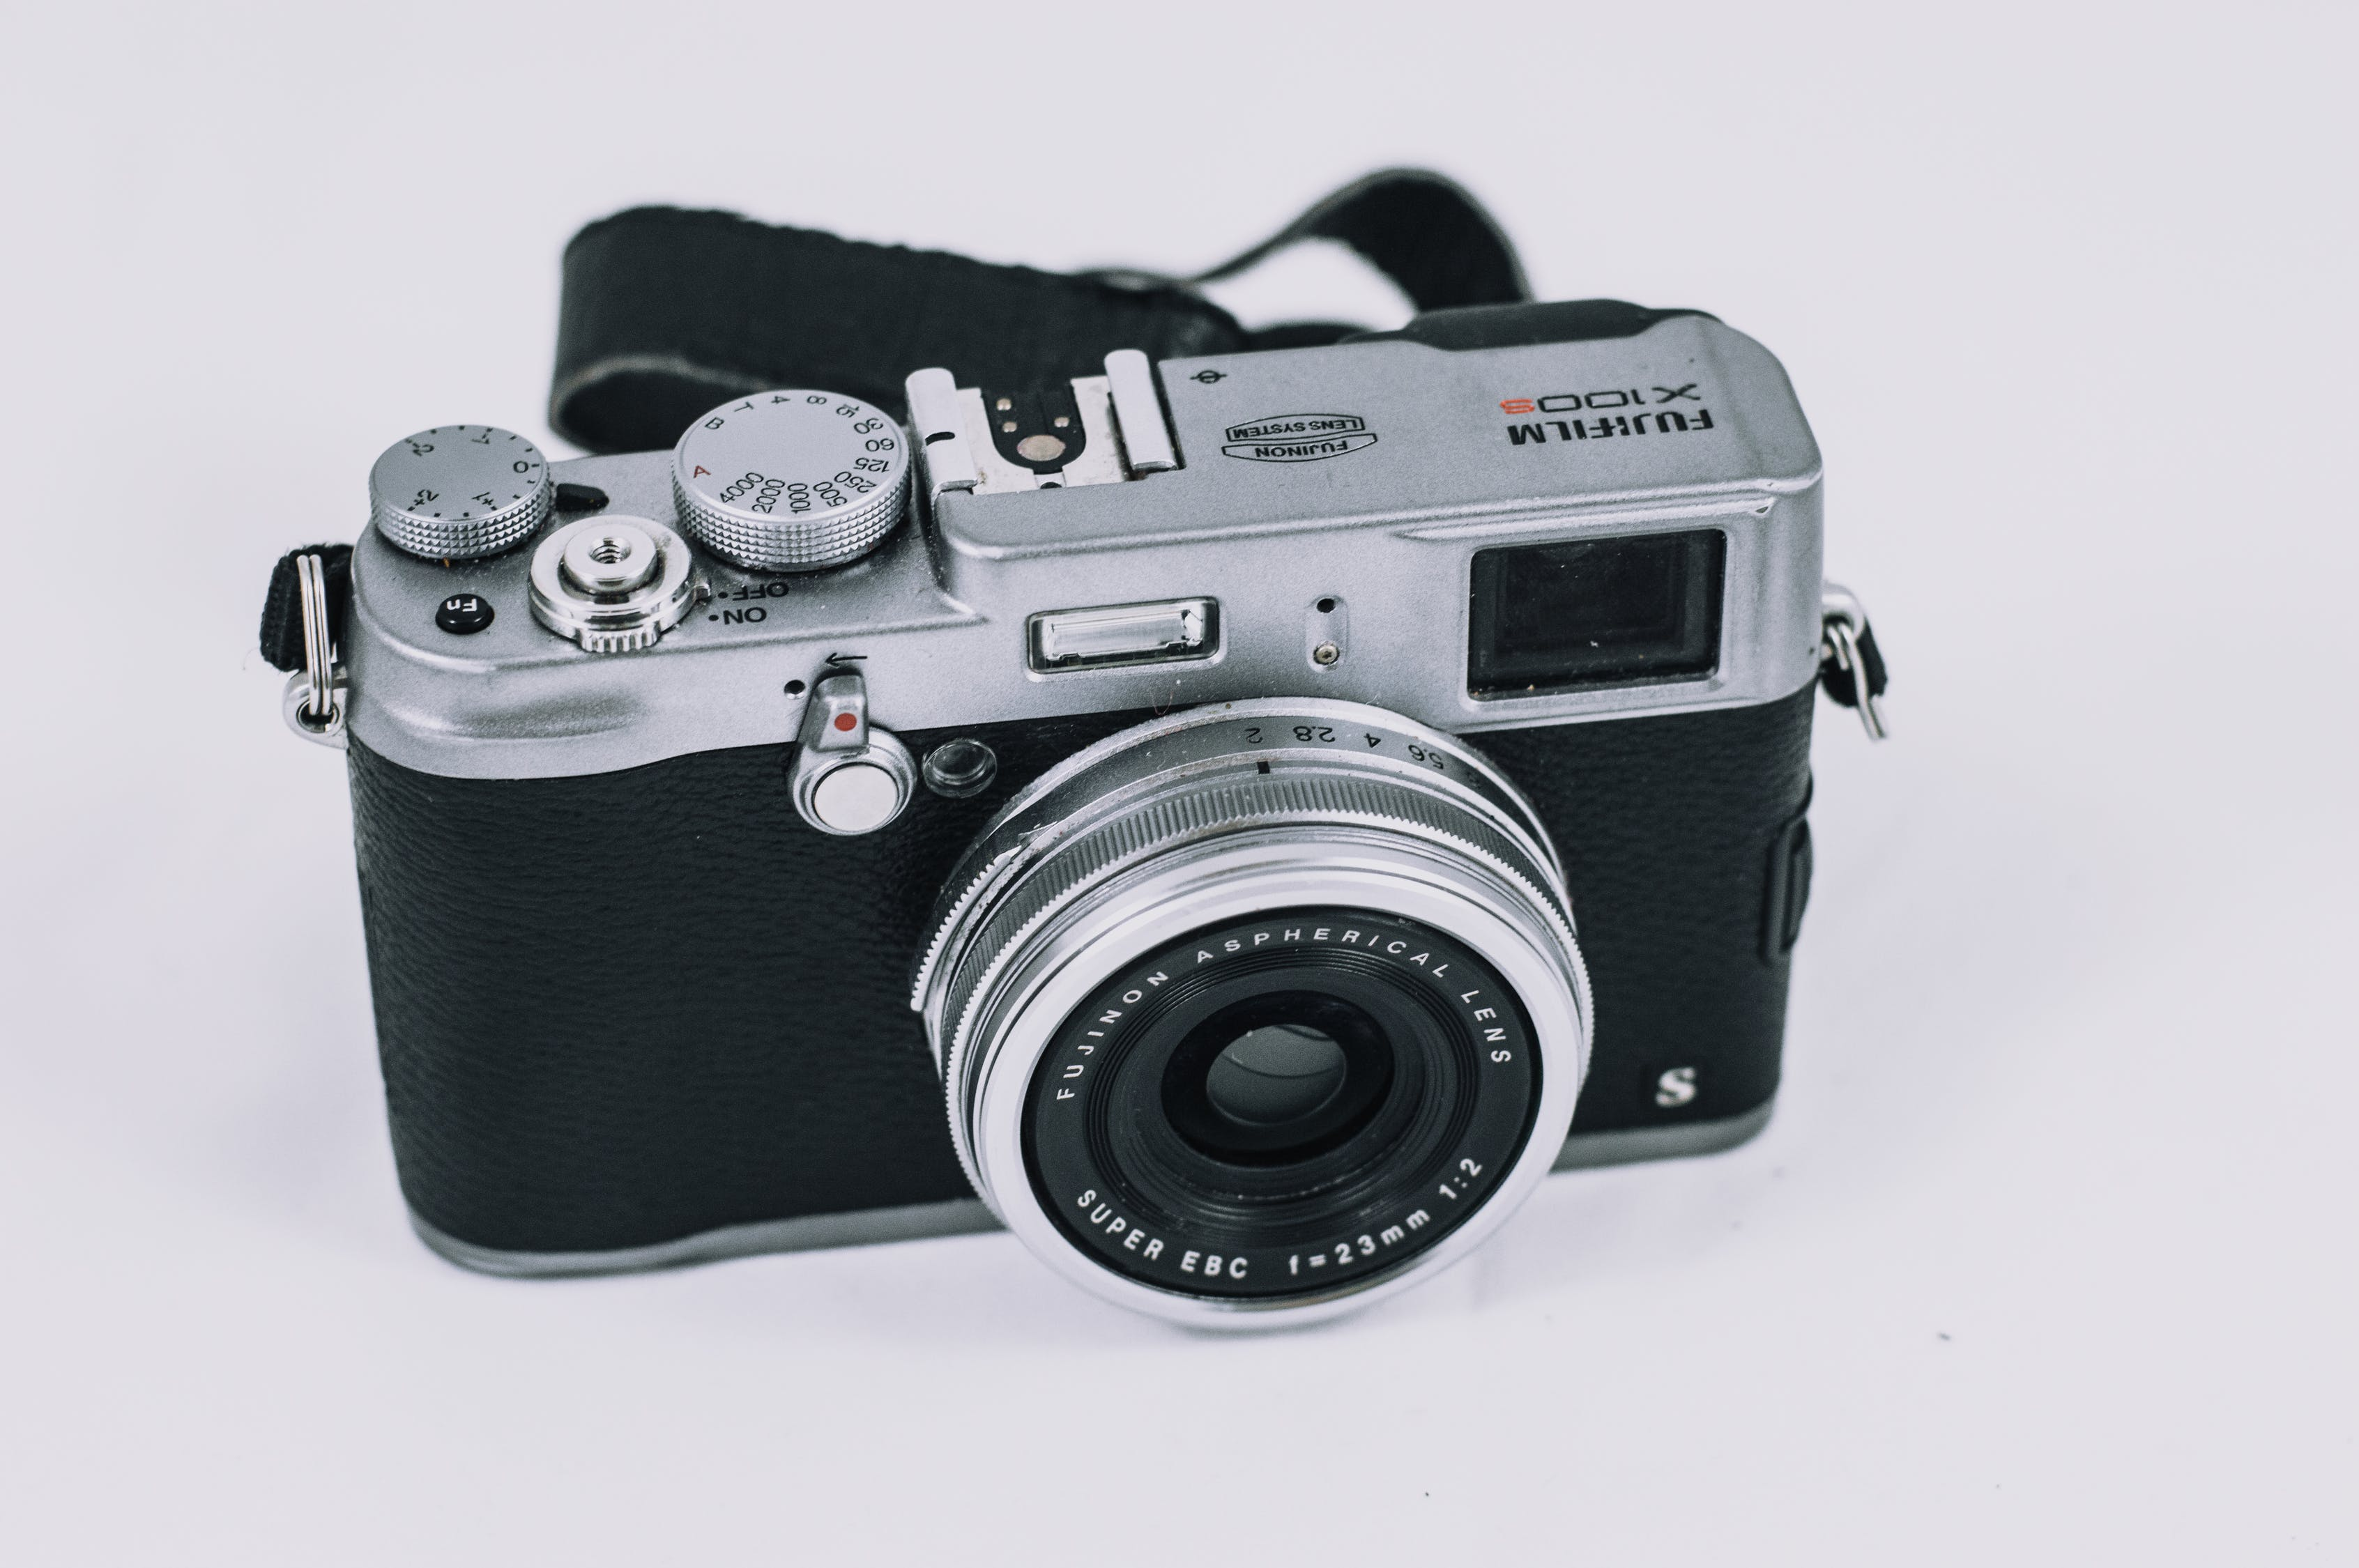 front look of a fujifilm camera